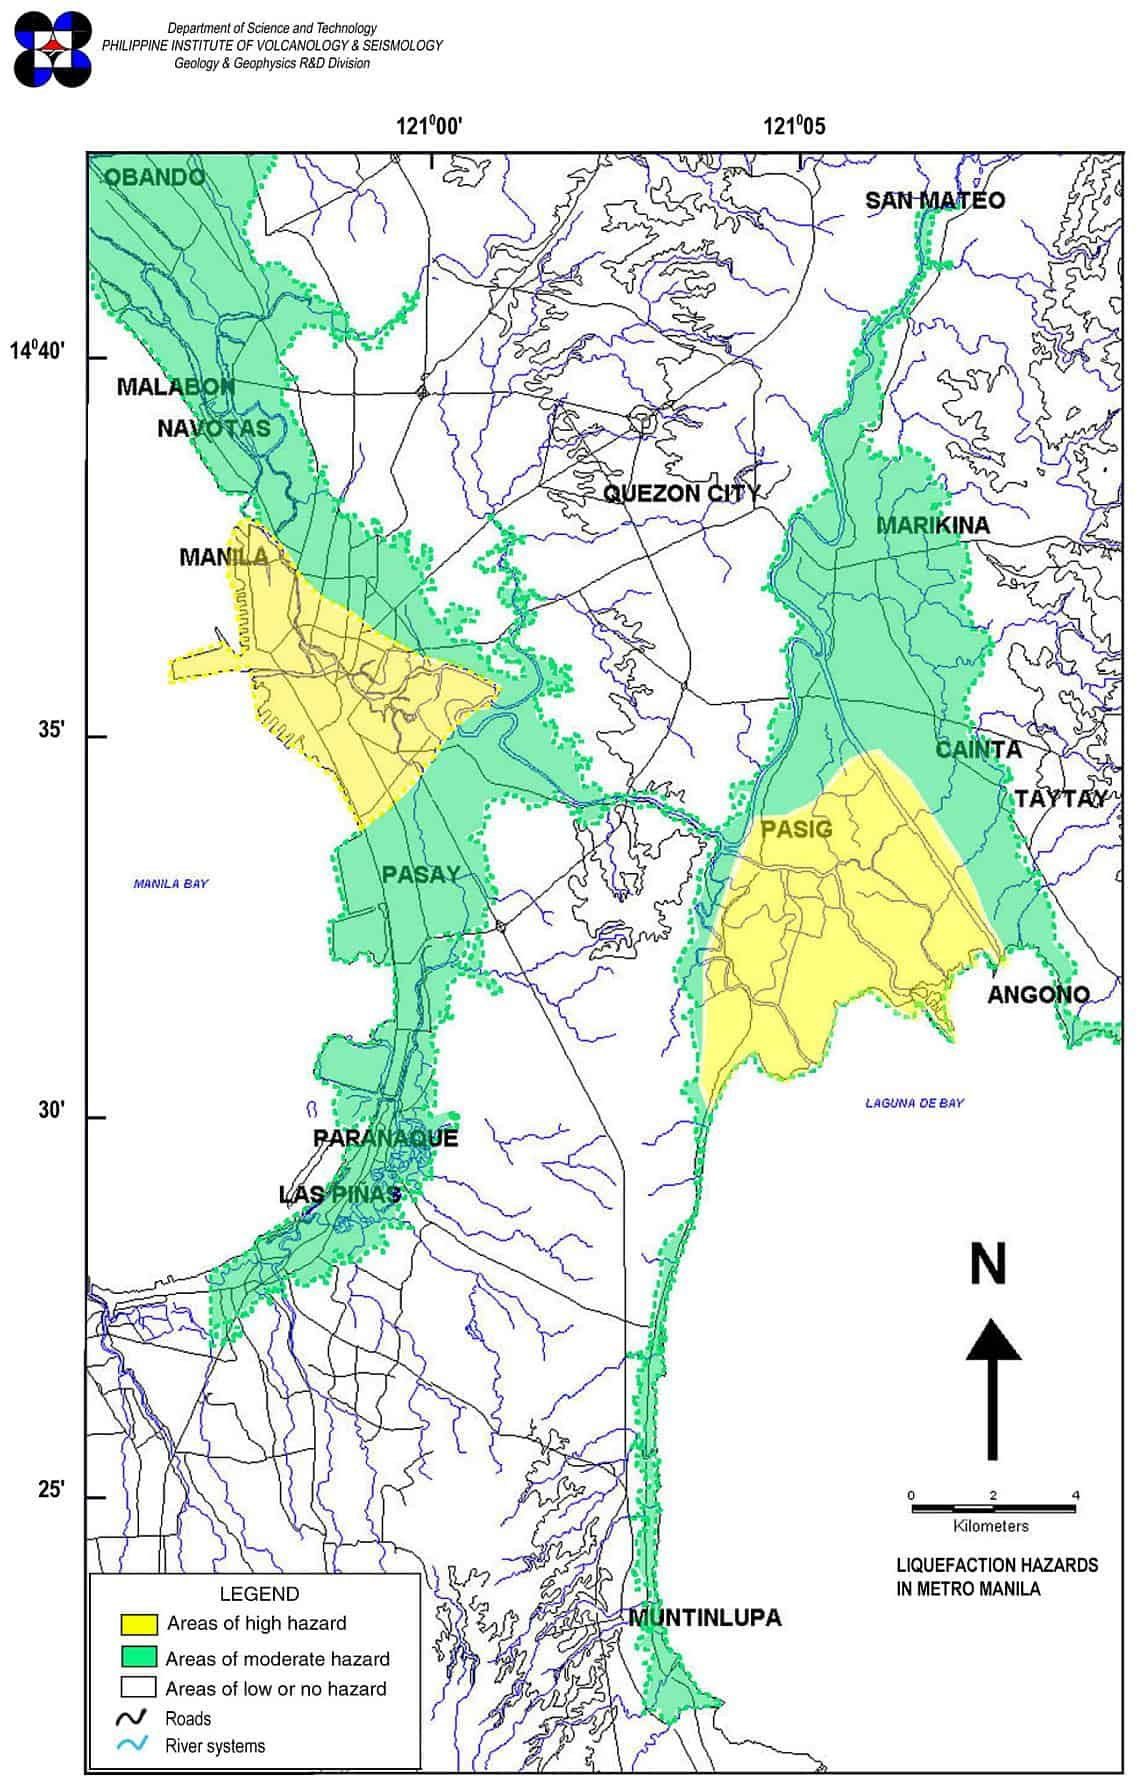 Liquefaction-Hazard-Map-of-Metro-Manila-2001